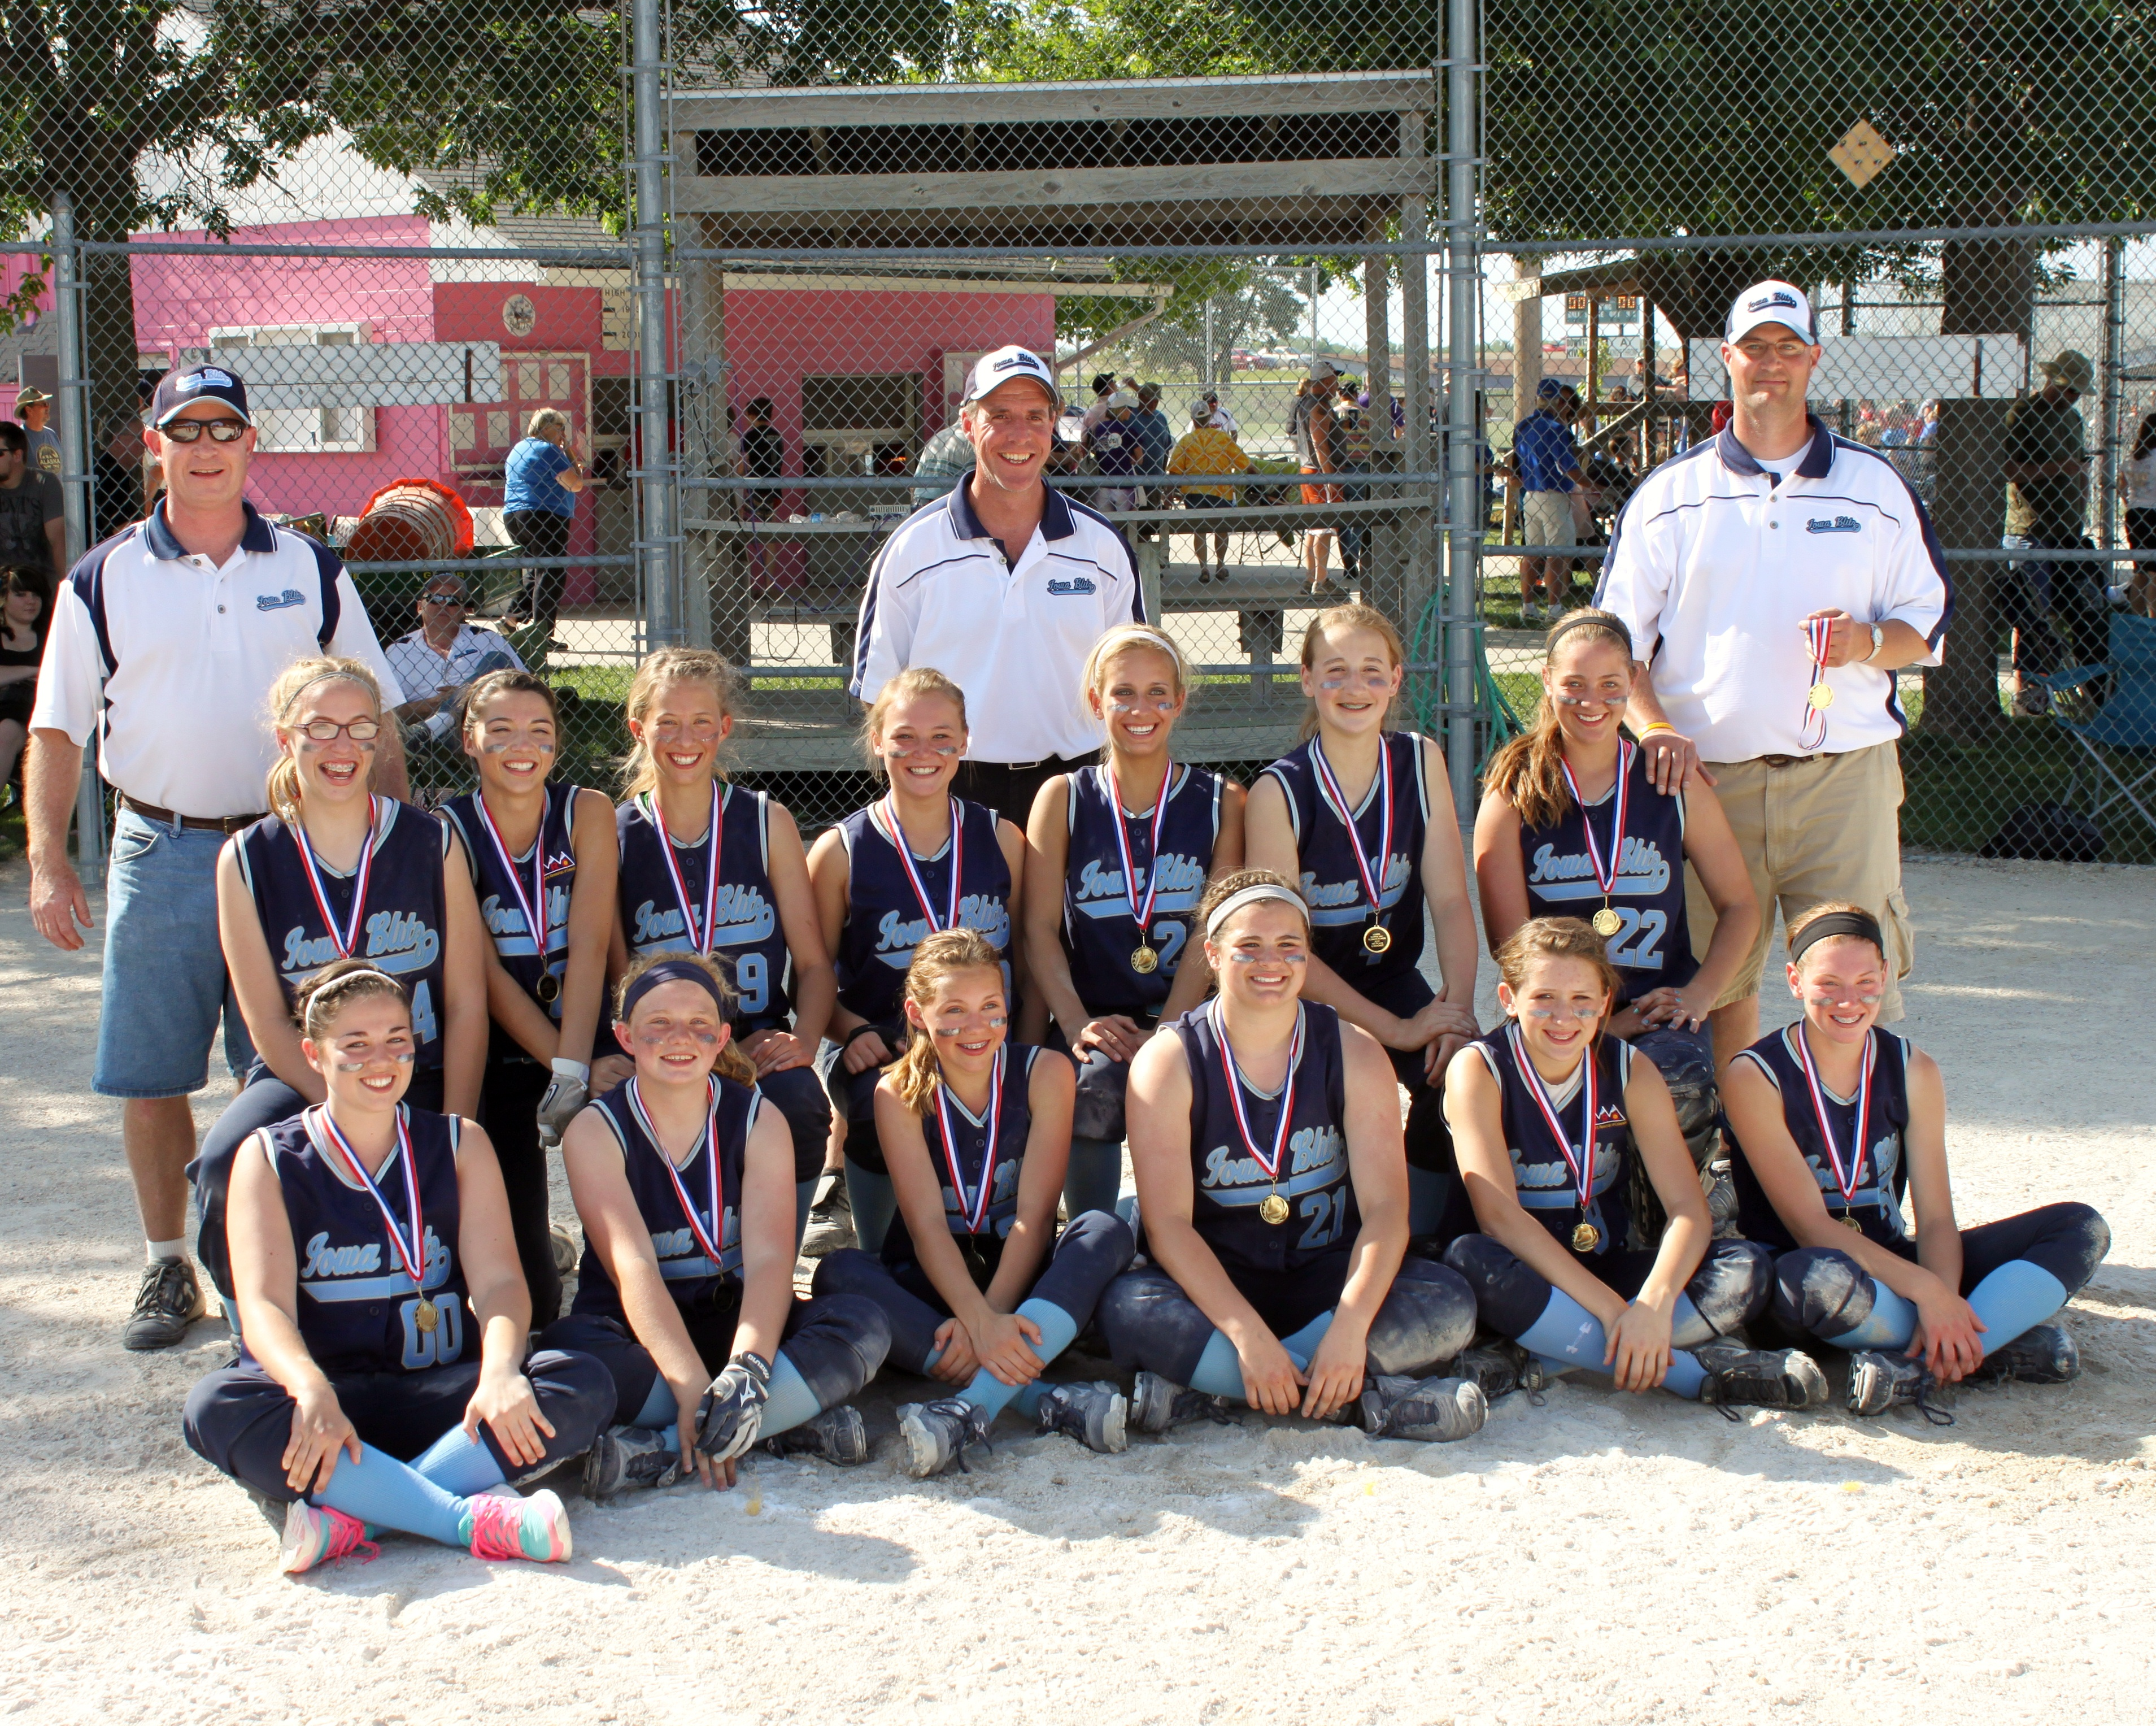 IOWA BLITZ 14U -- DES MOINES, IA